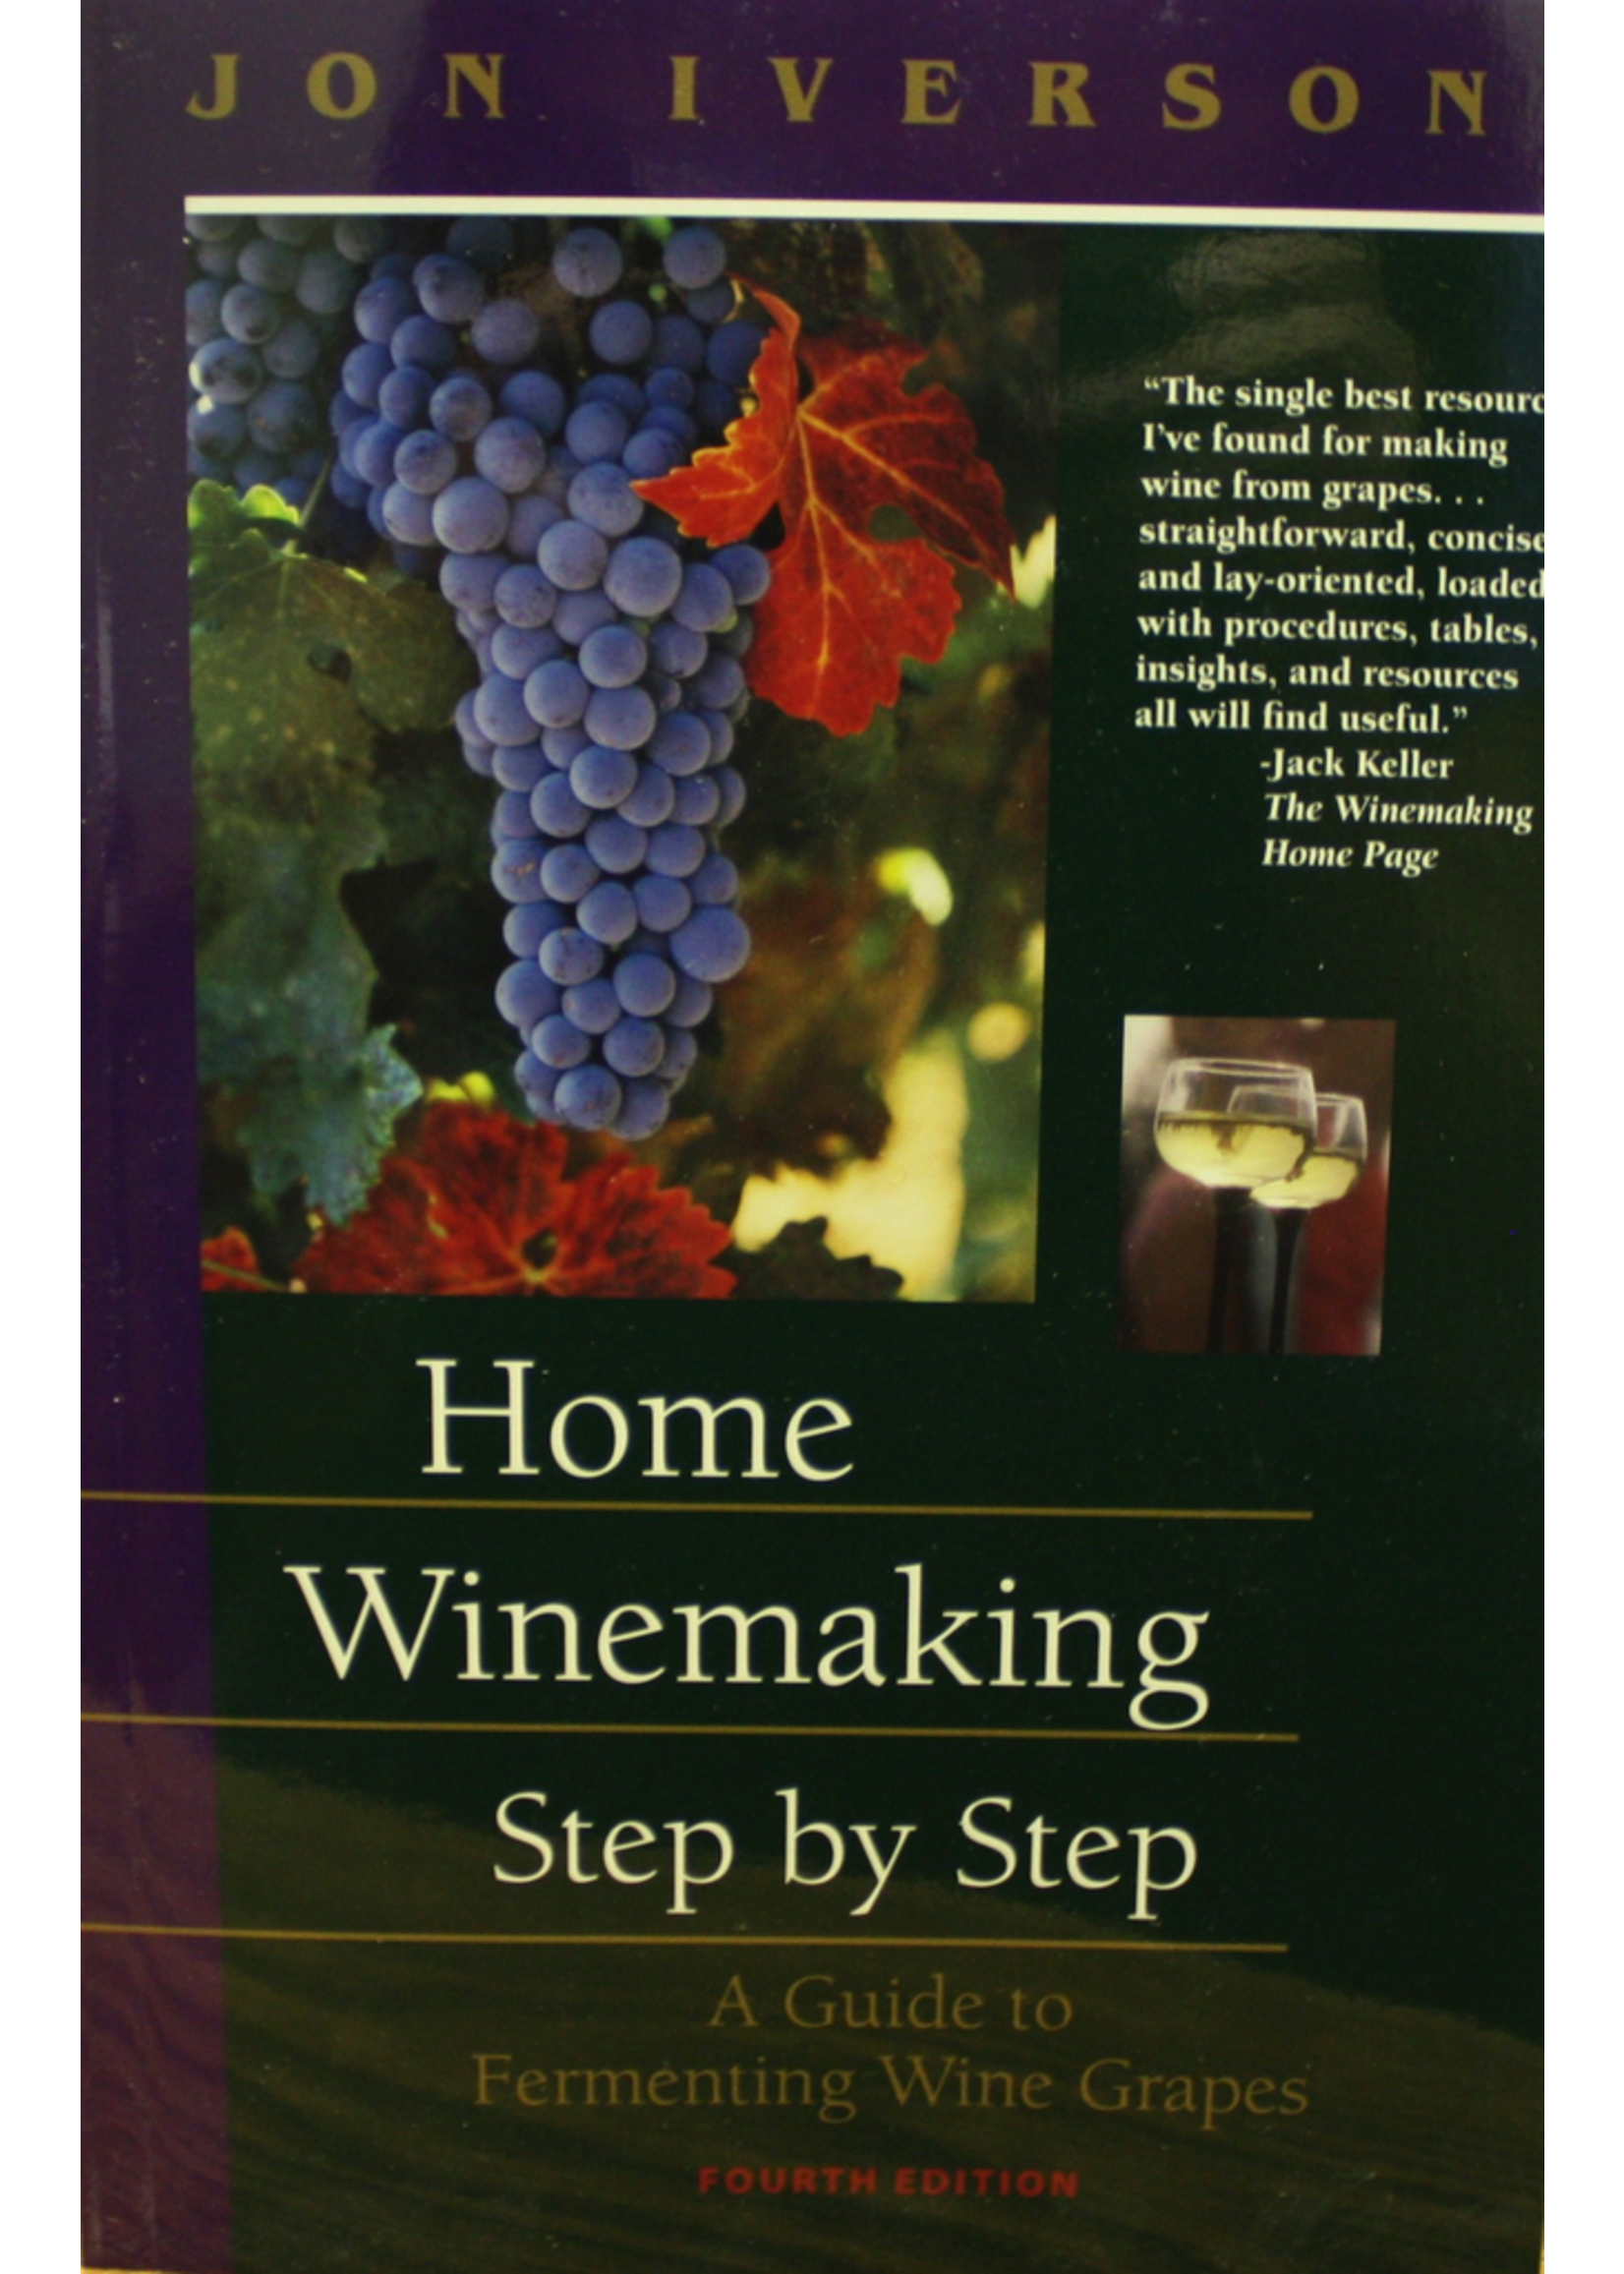 Books Home Winemaking Step by Step (Iverson)